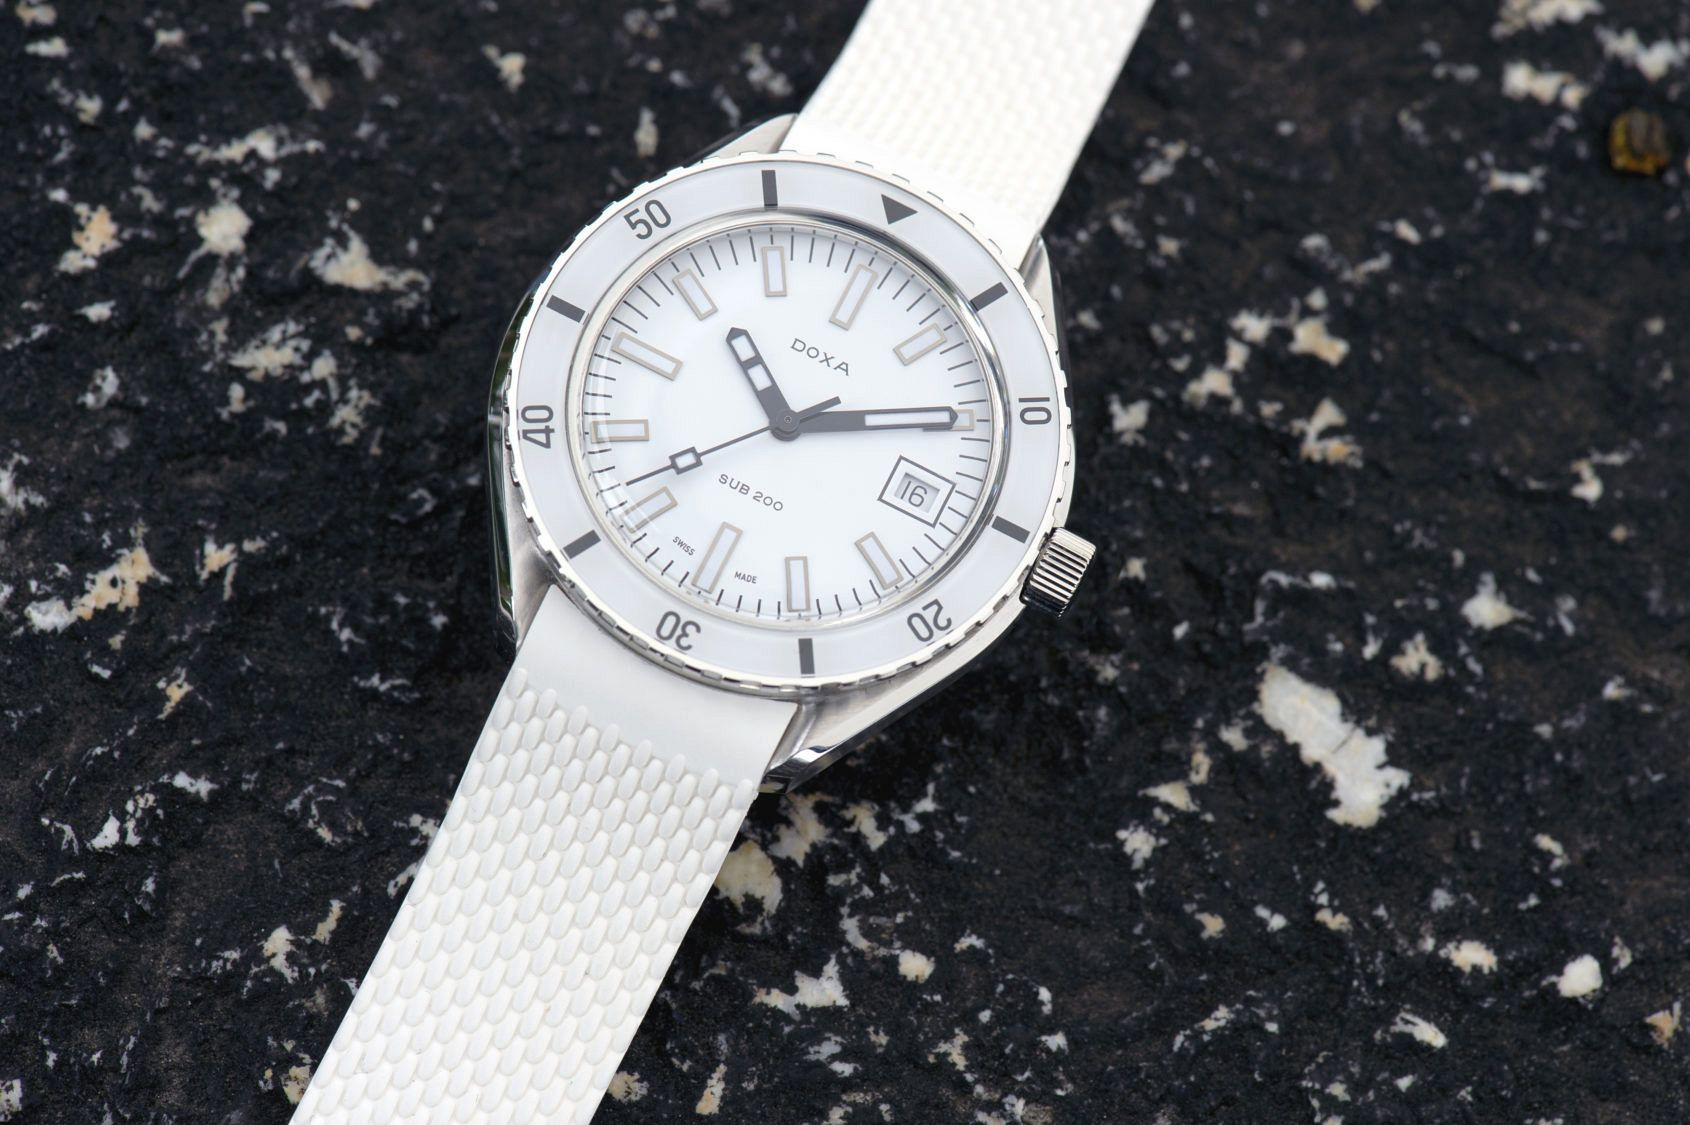 INTRODUCING: The DOXA SUB 200 Whitepearl is as fresh as an arctic breeze